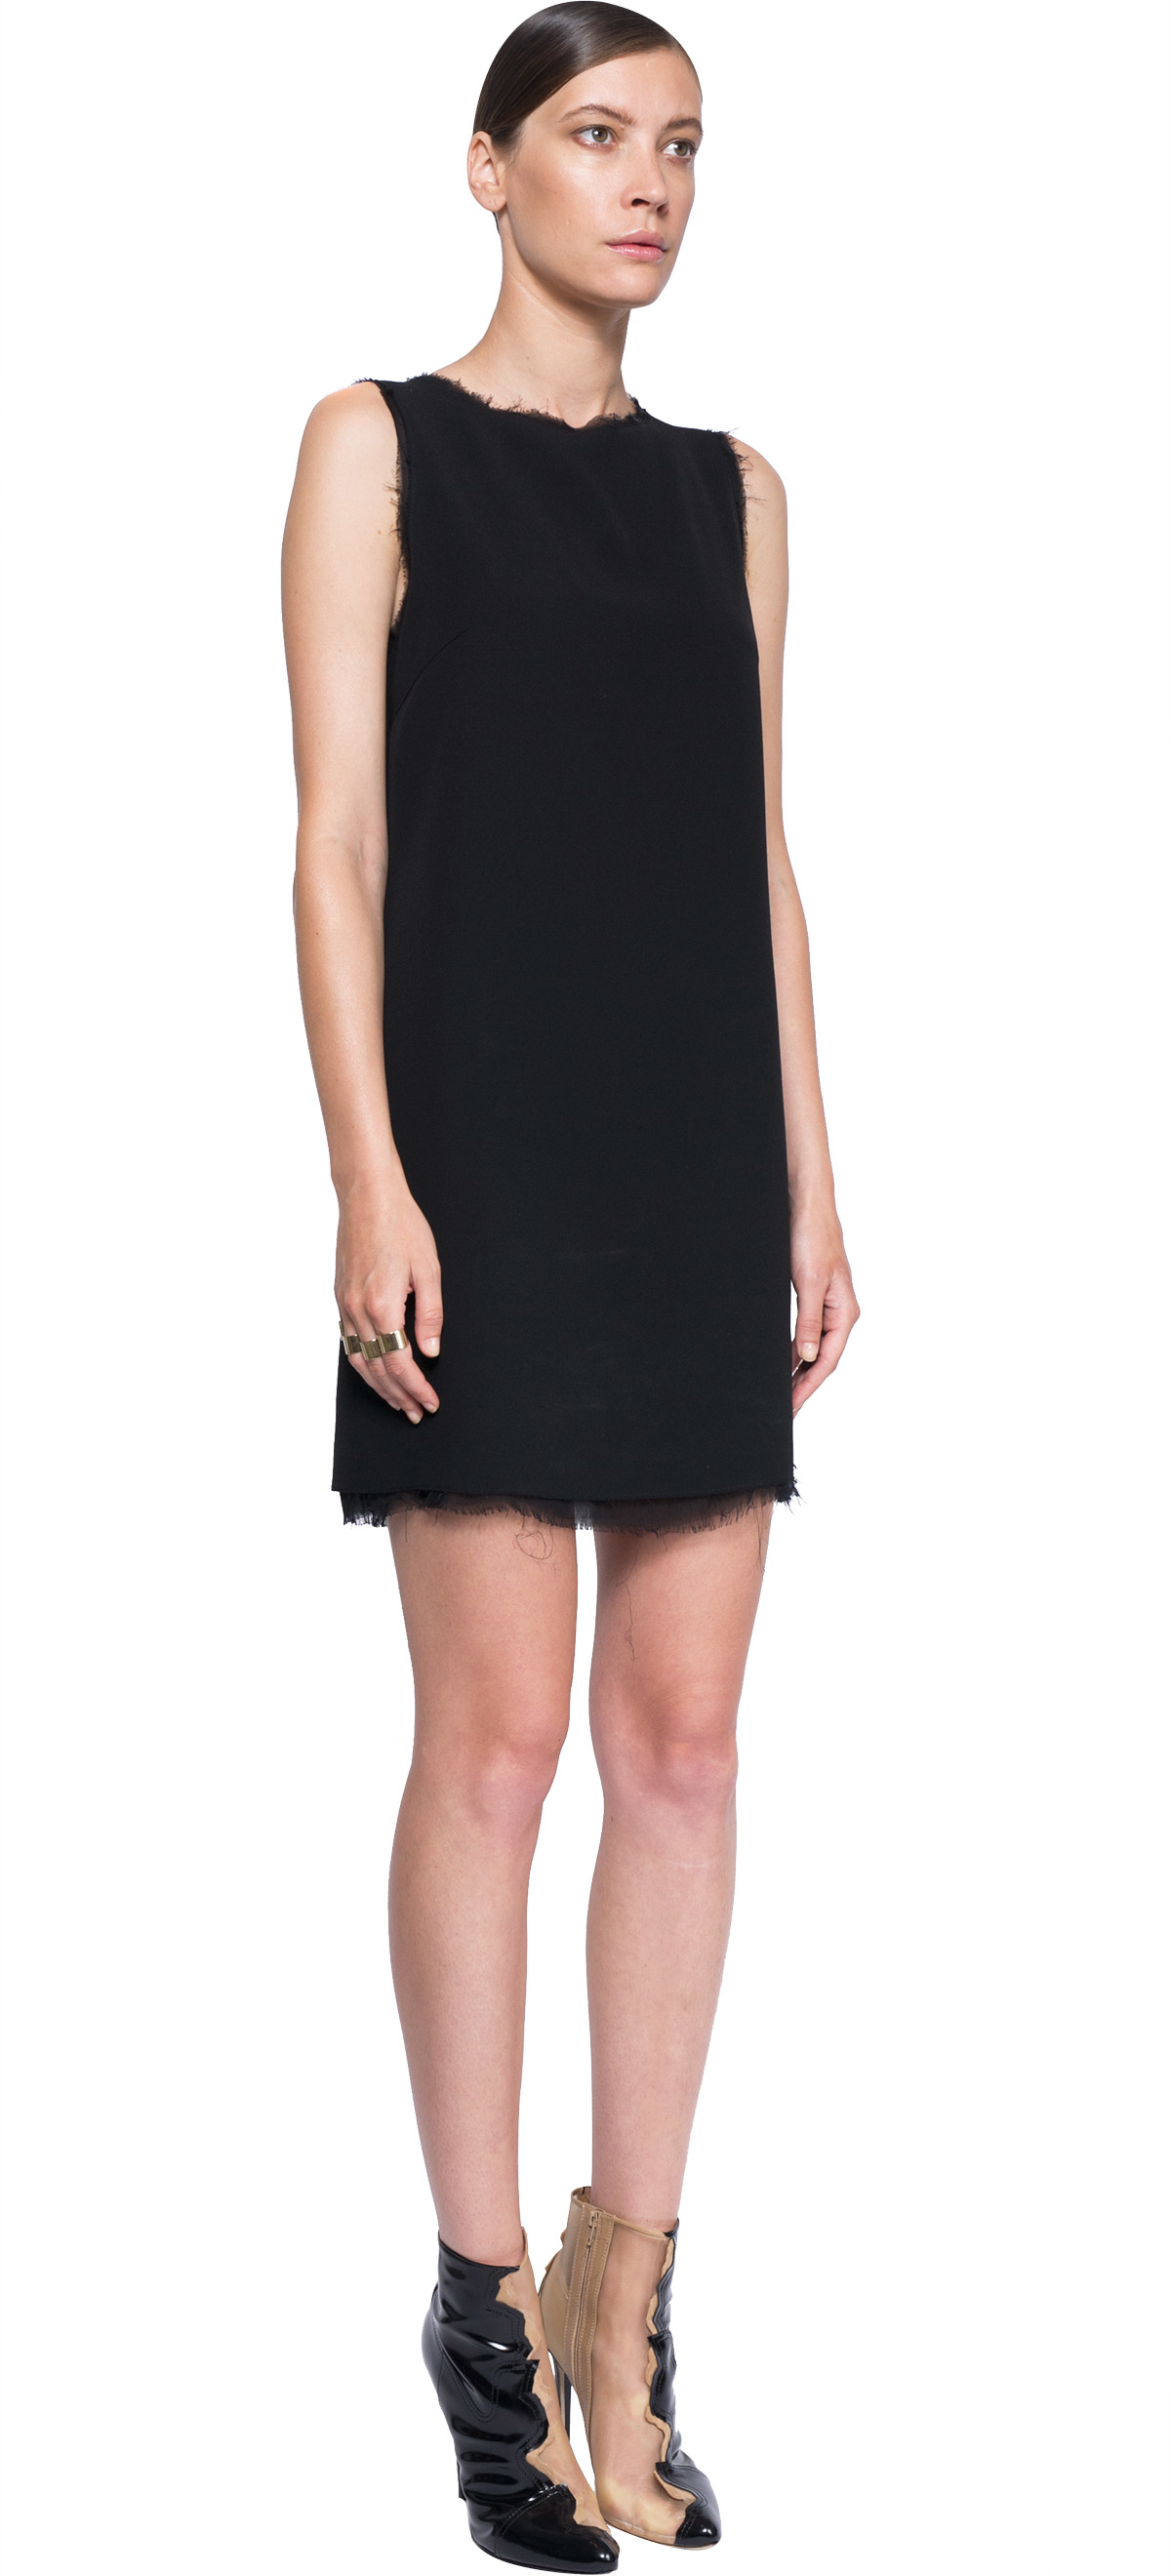 Maison margiela Rib-knit Tank Dress in Black